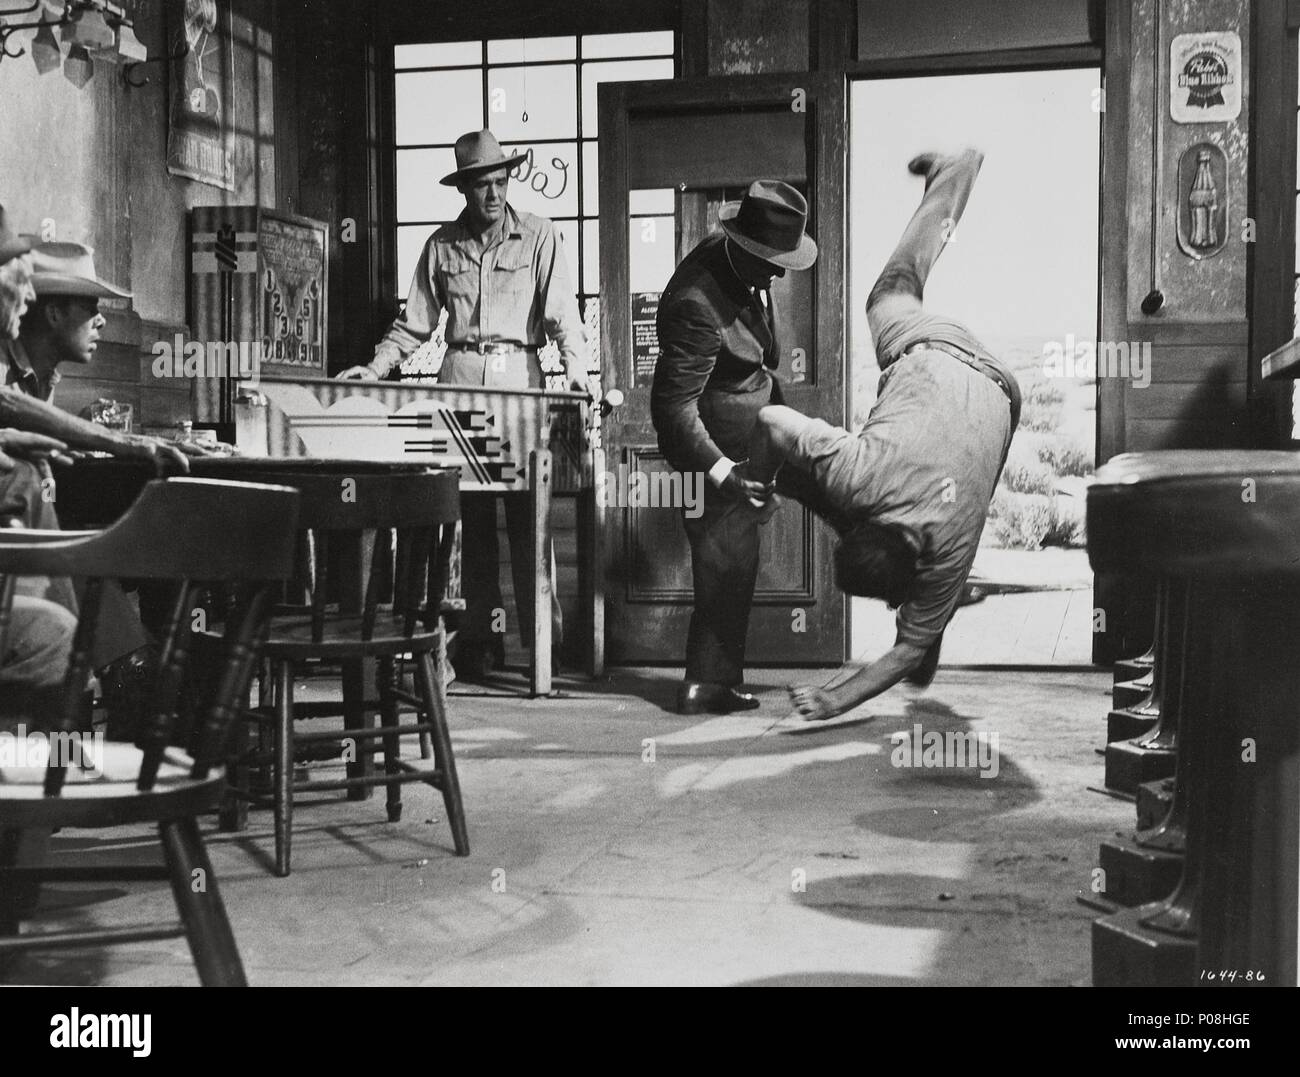 Image result for spencer tracy and ernest borgnine fight scene""